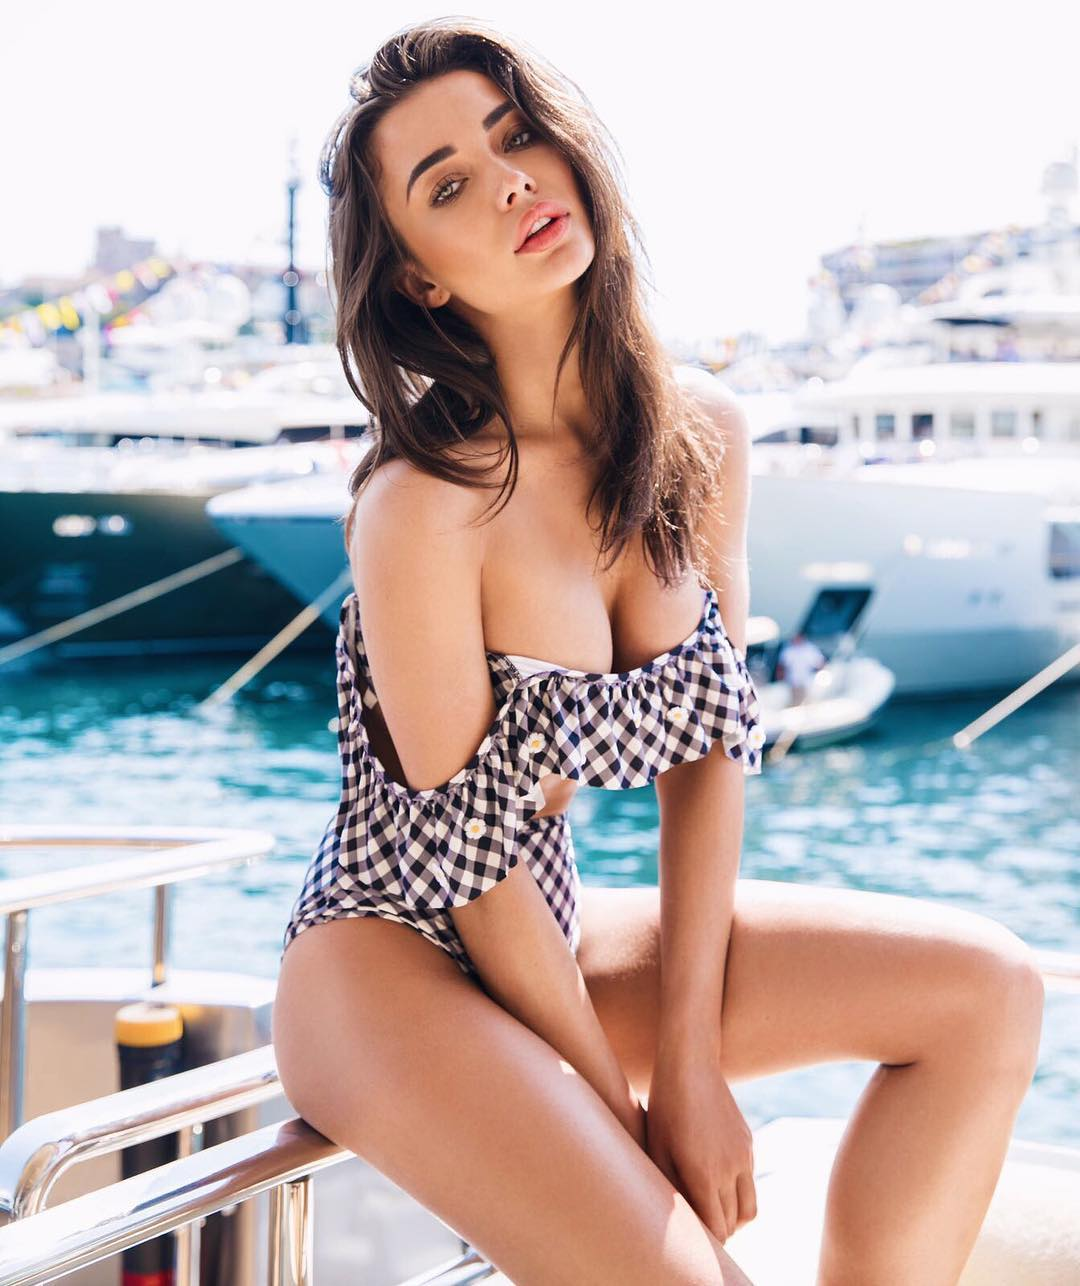 Amy Jackson Instagram username